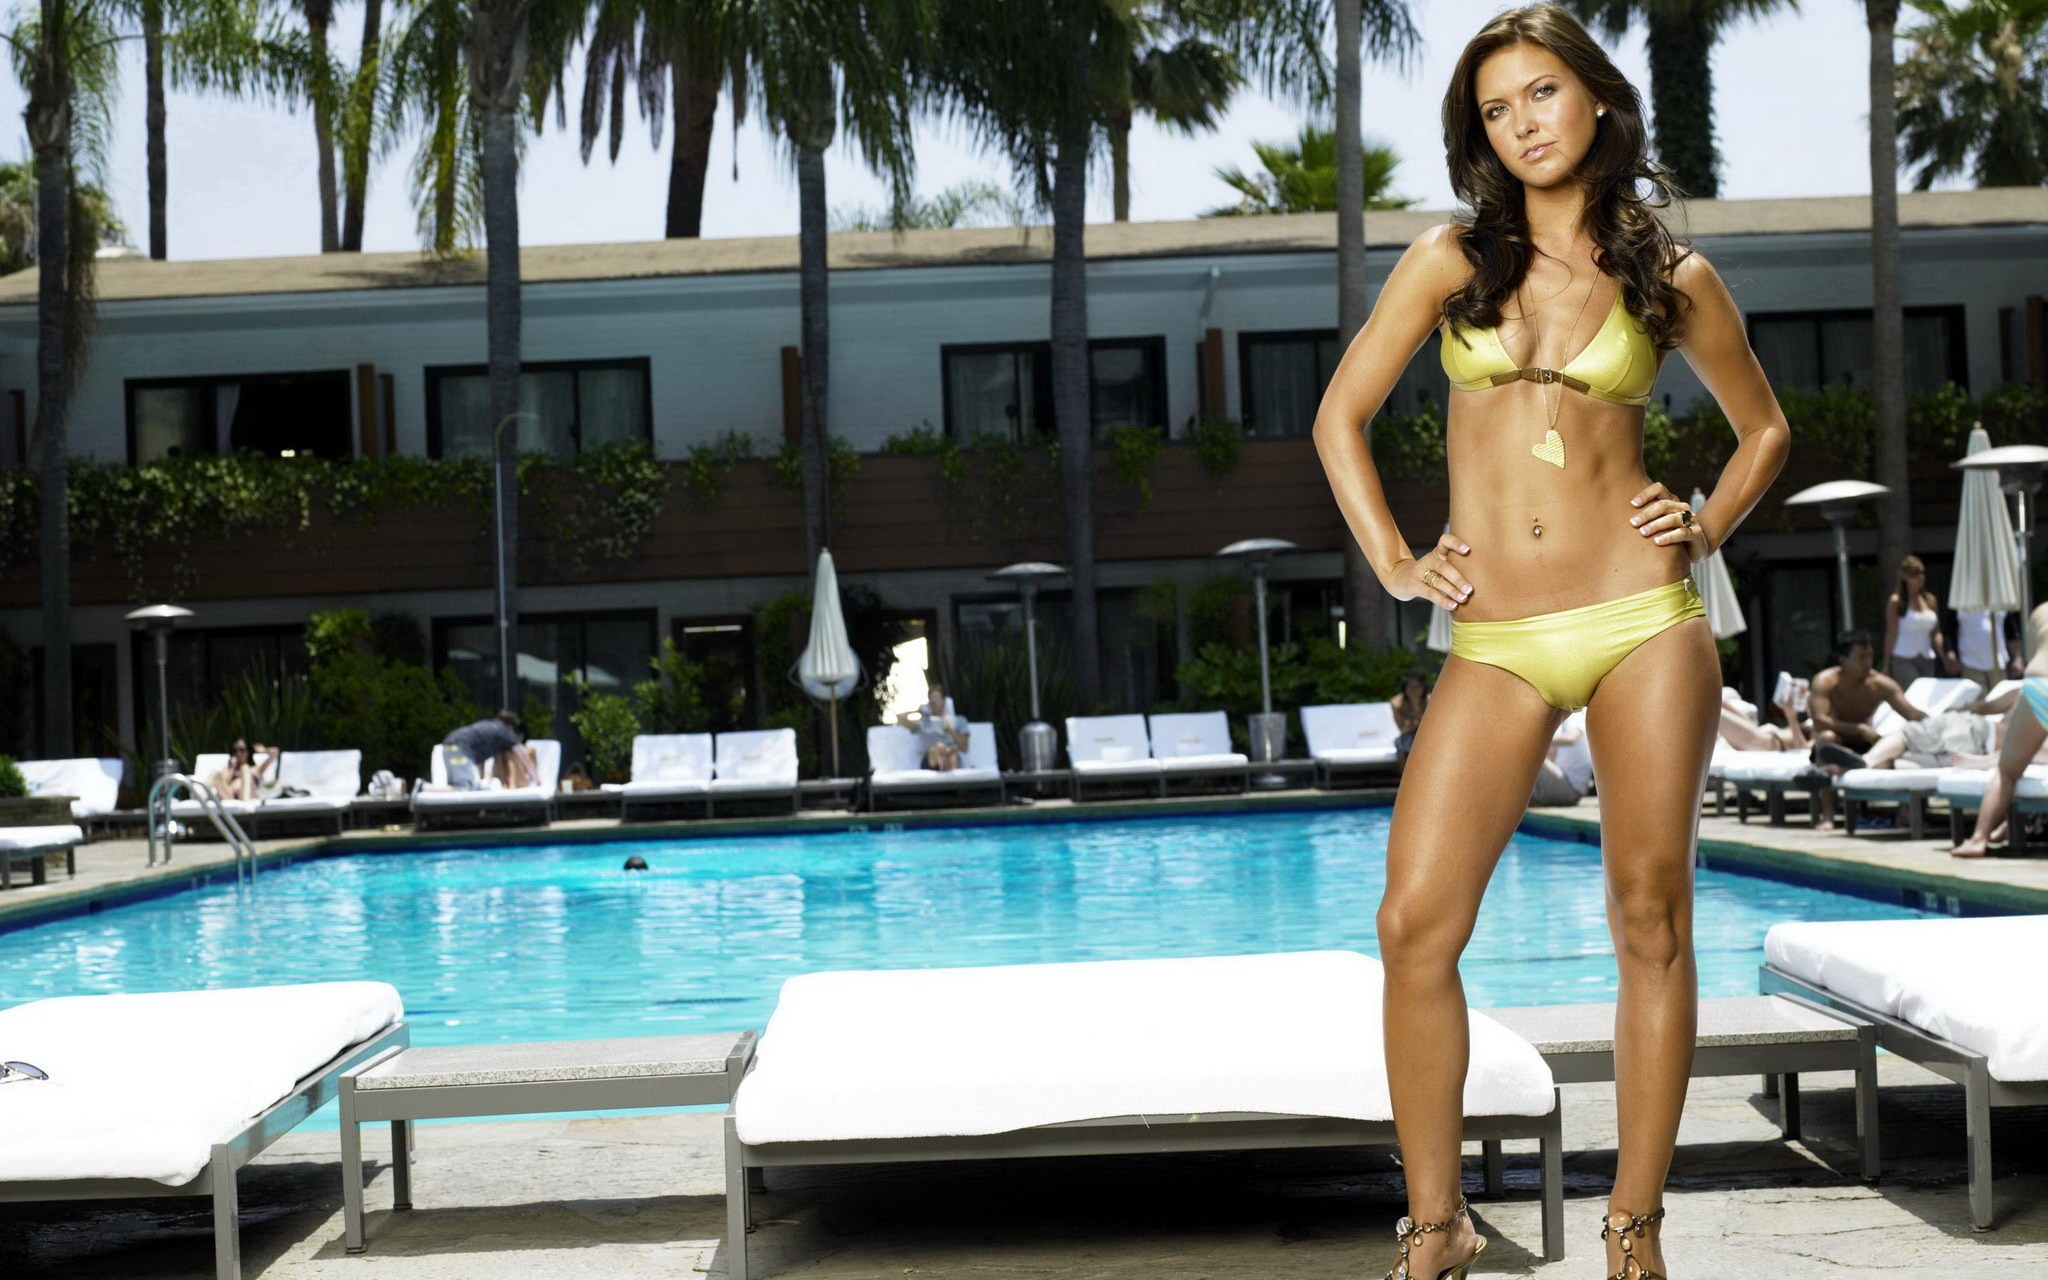 woman bikini Audrina Patridge HD Wallpaper